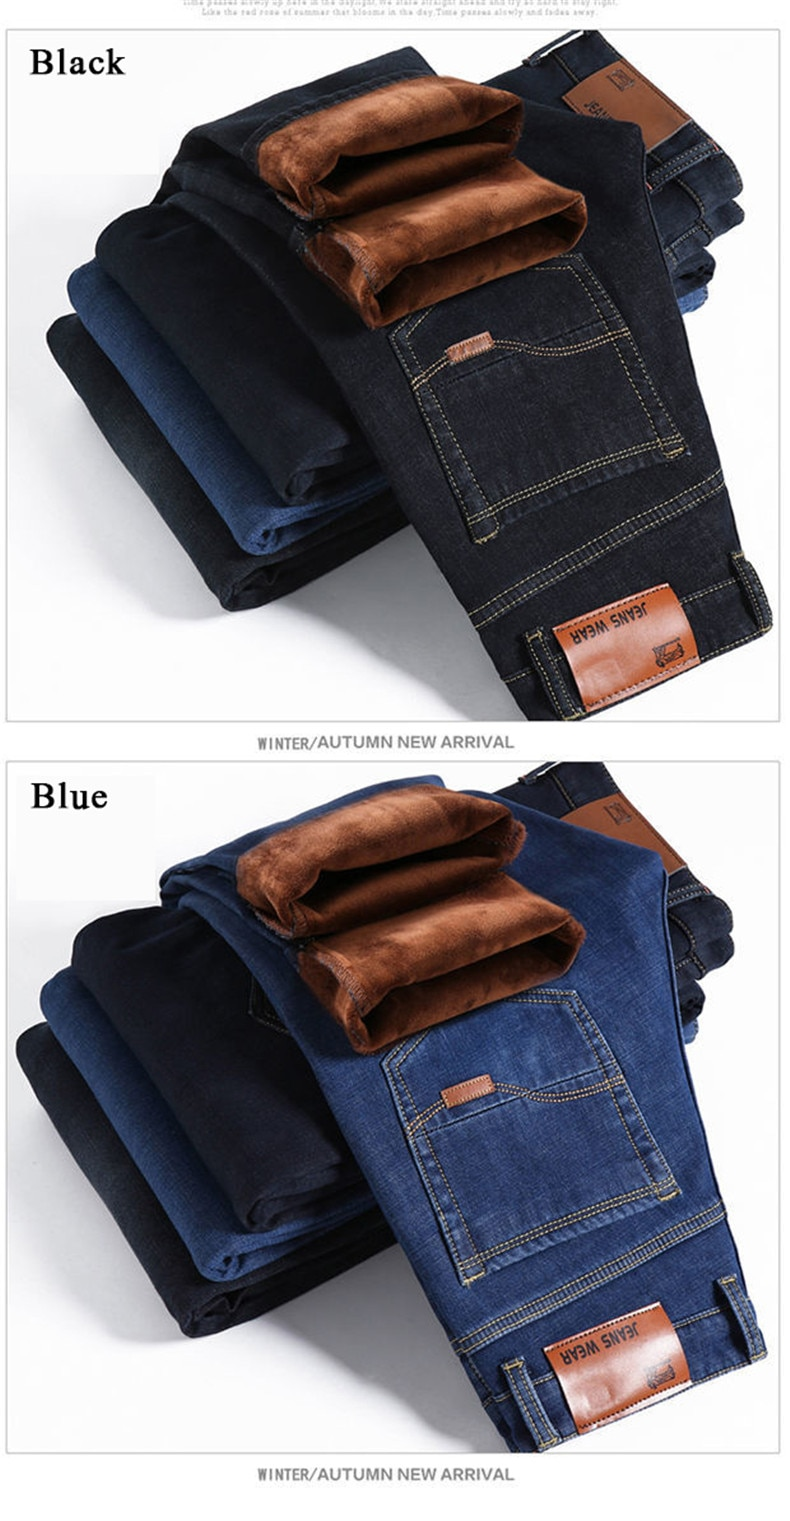 Men Brand 2020 New Winter Warm Jeans Flannel Stretch High Quality Jean Trousers Men Spring Casual Fashion Business Men's Pants